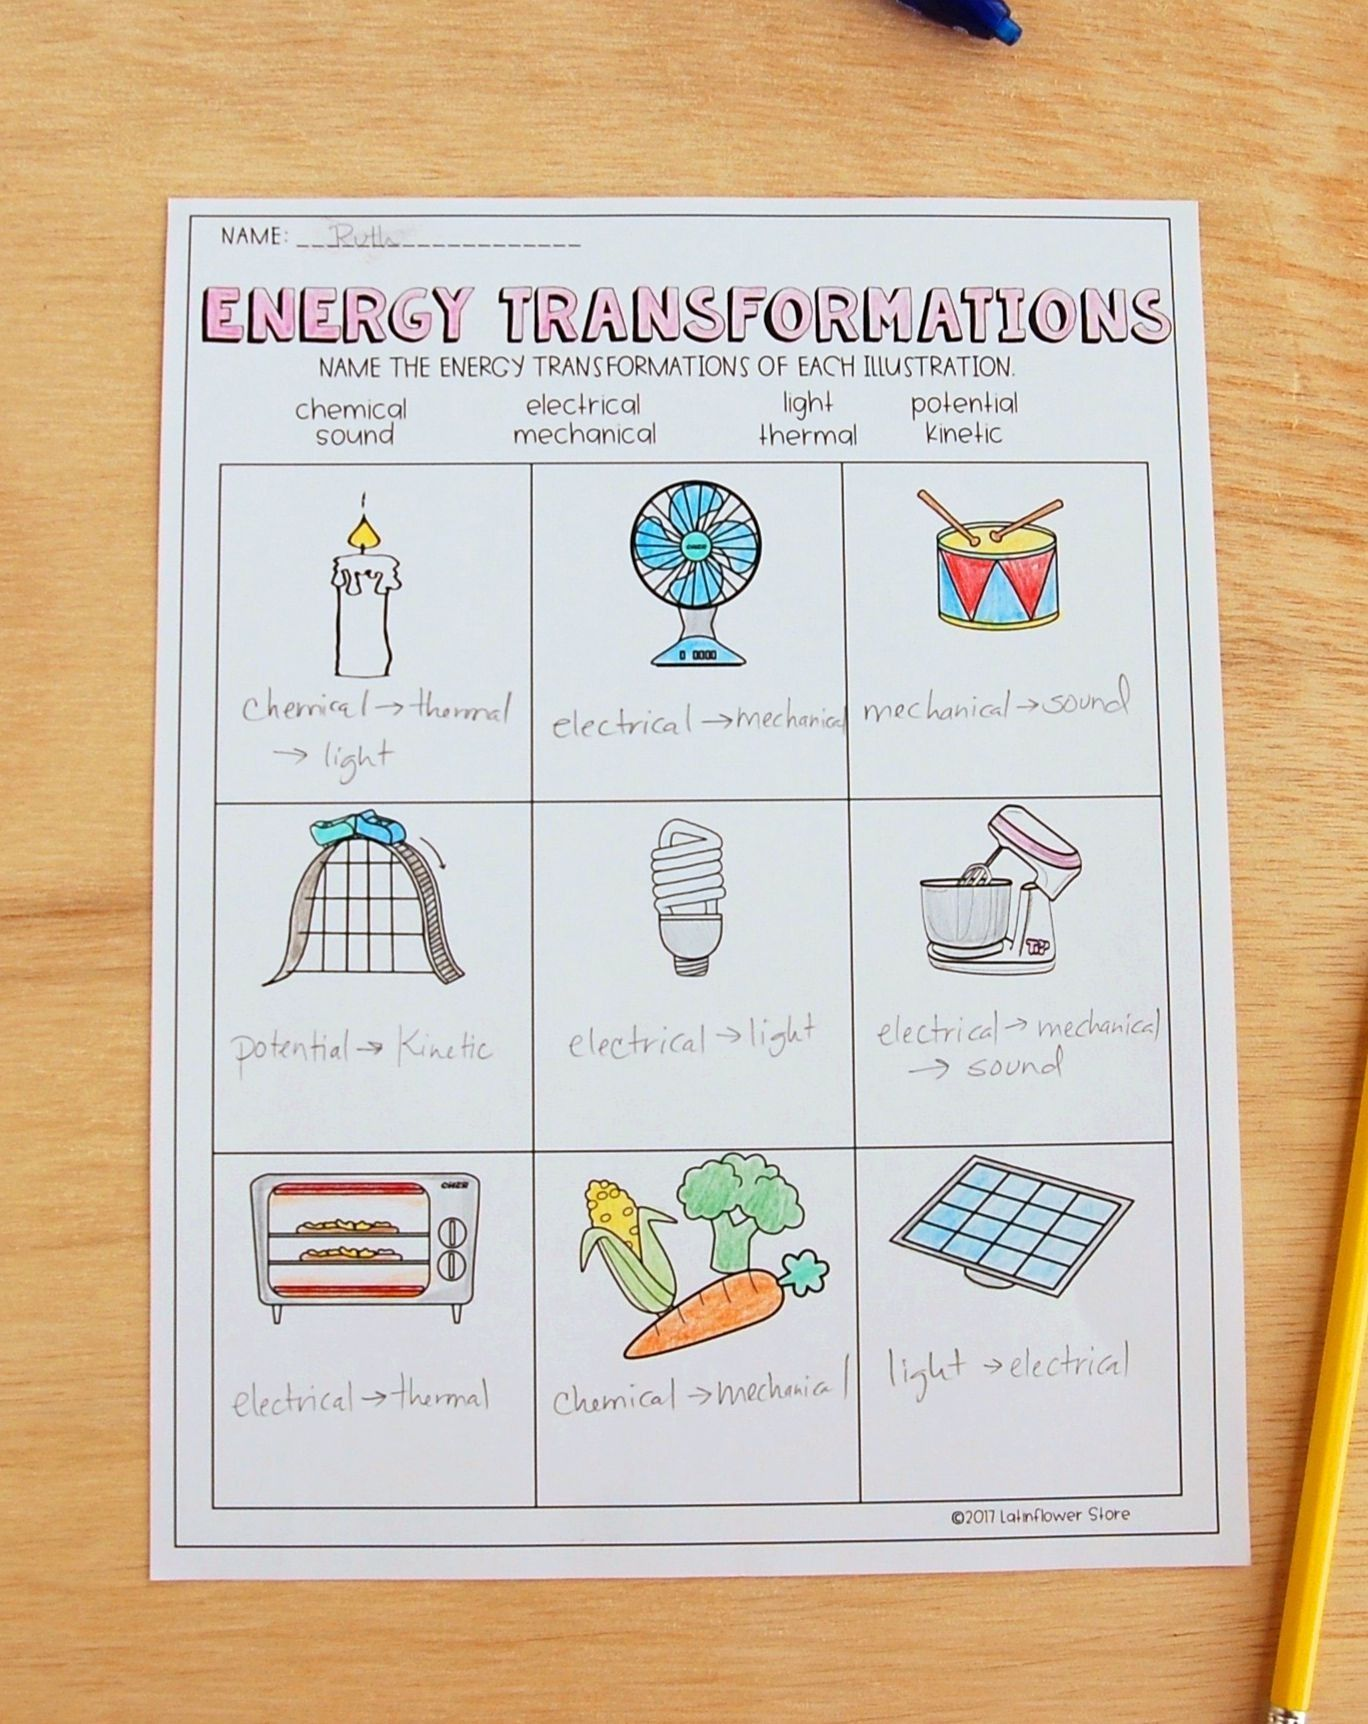 hight resolution of Energy Transformations Worksheet   Energy transformations